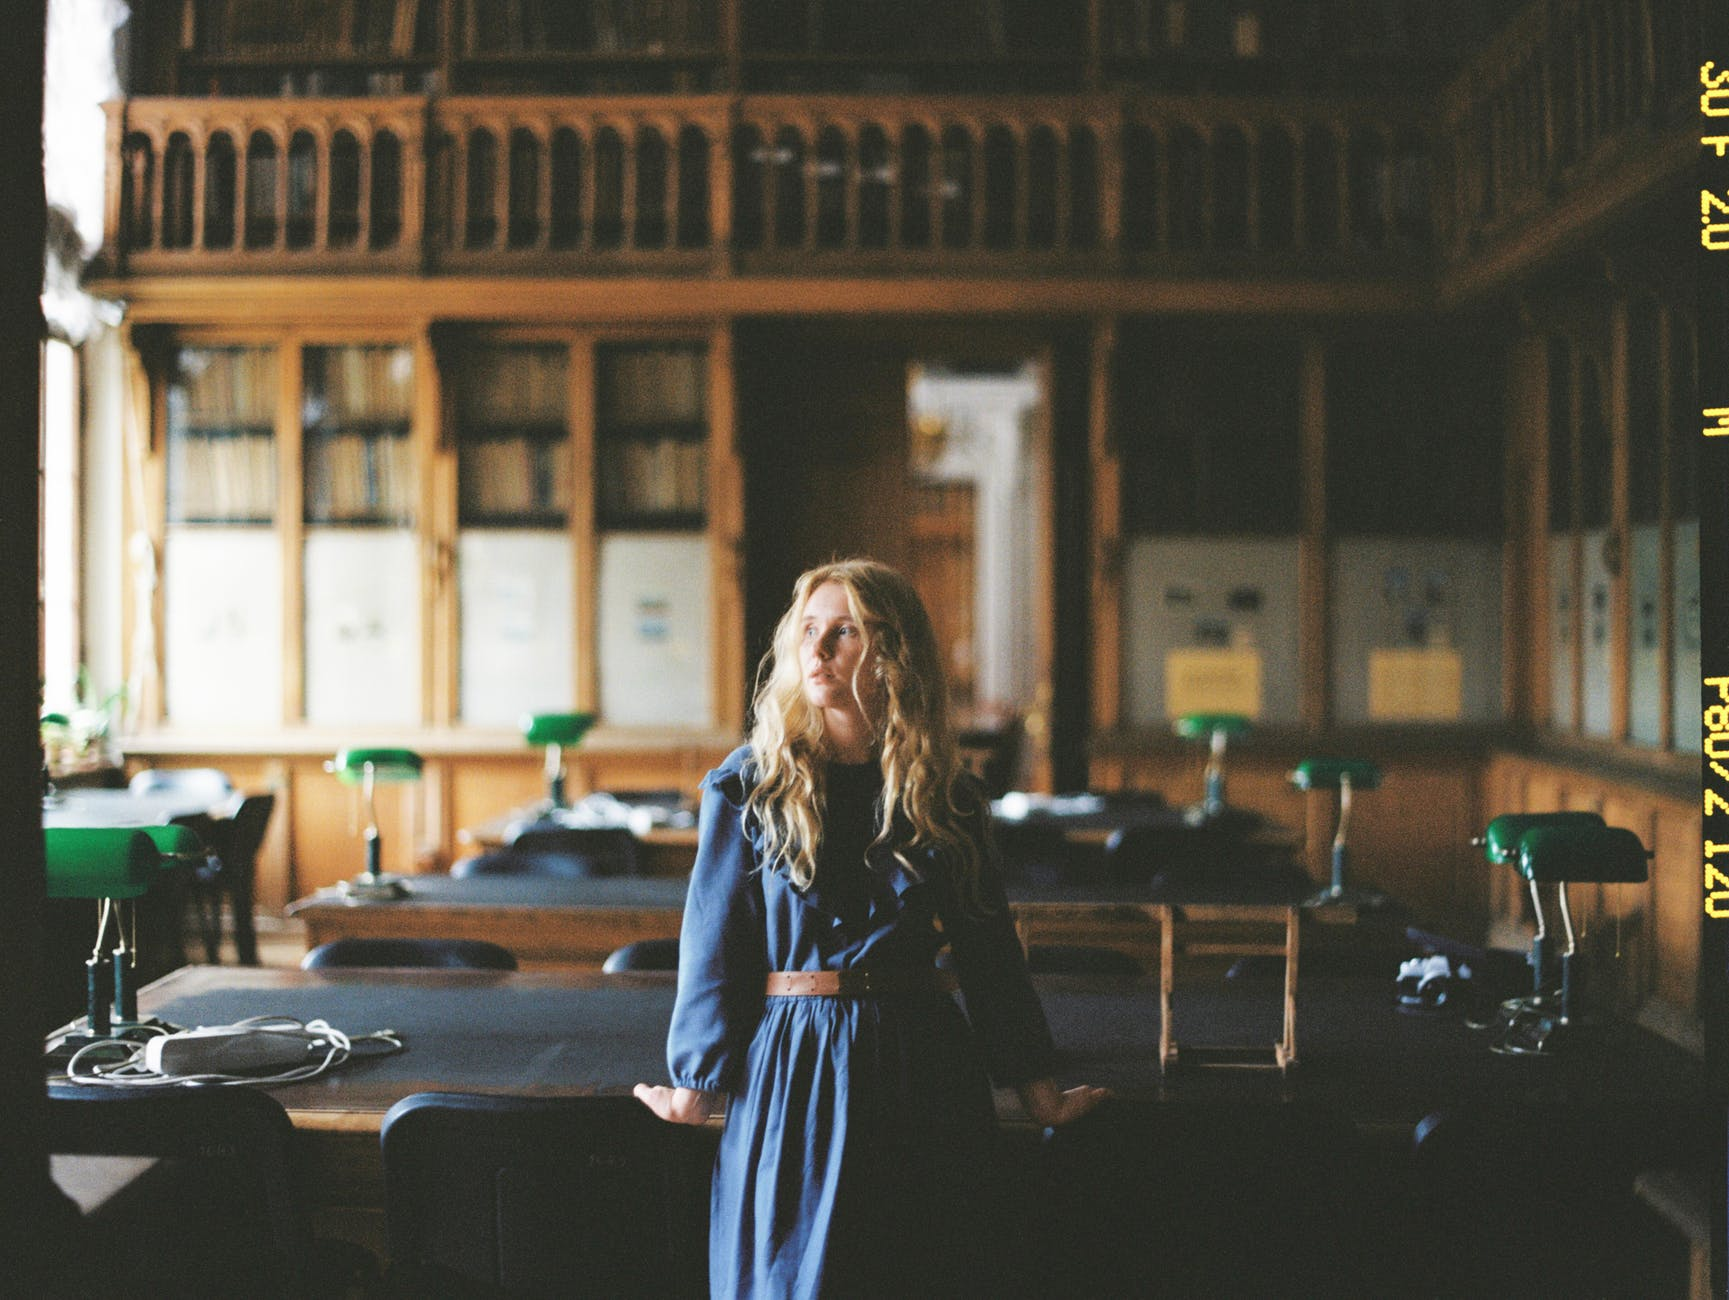 woman in blue dress in a library